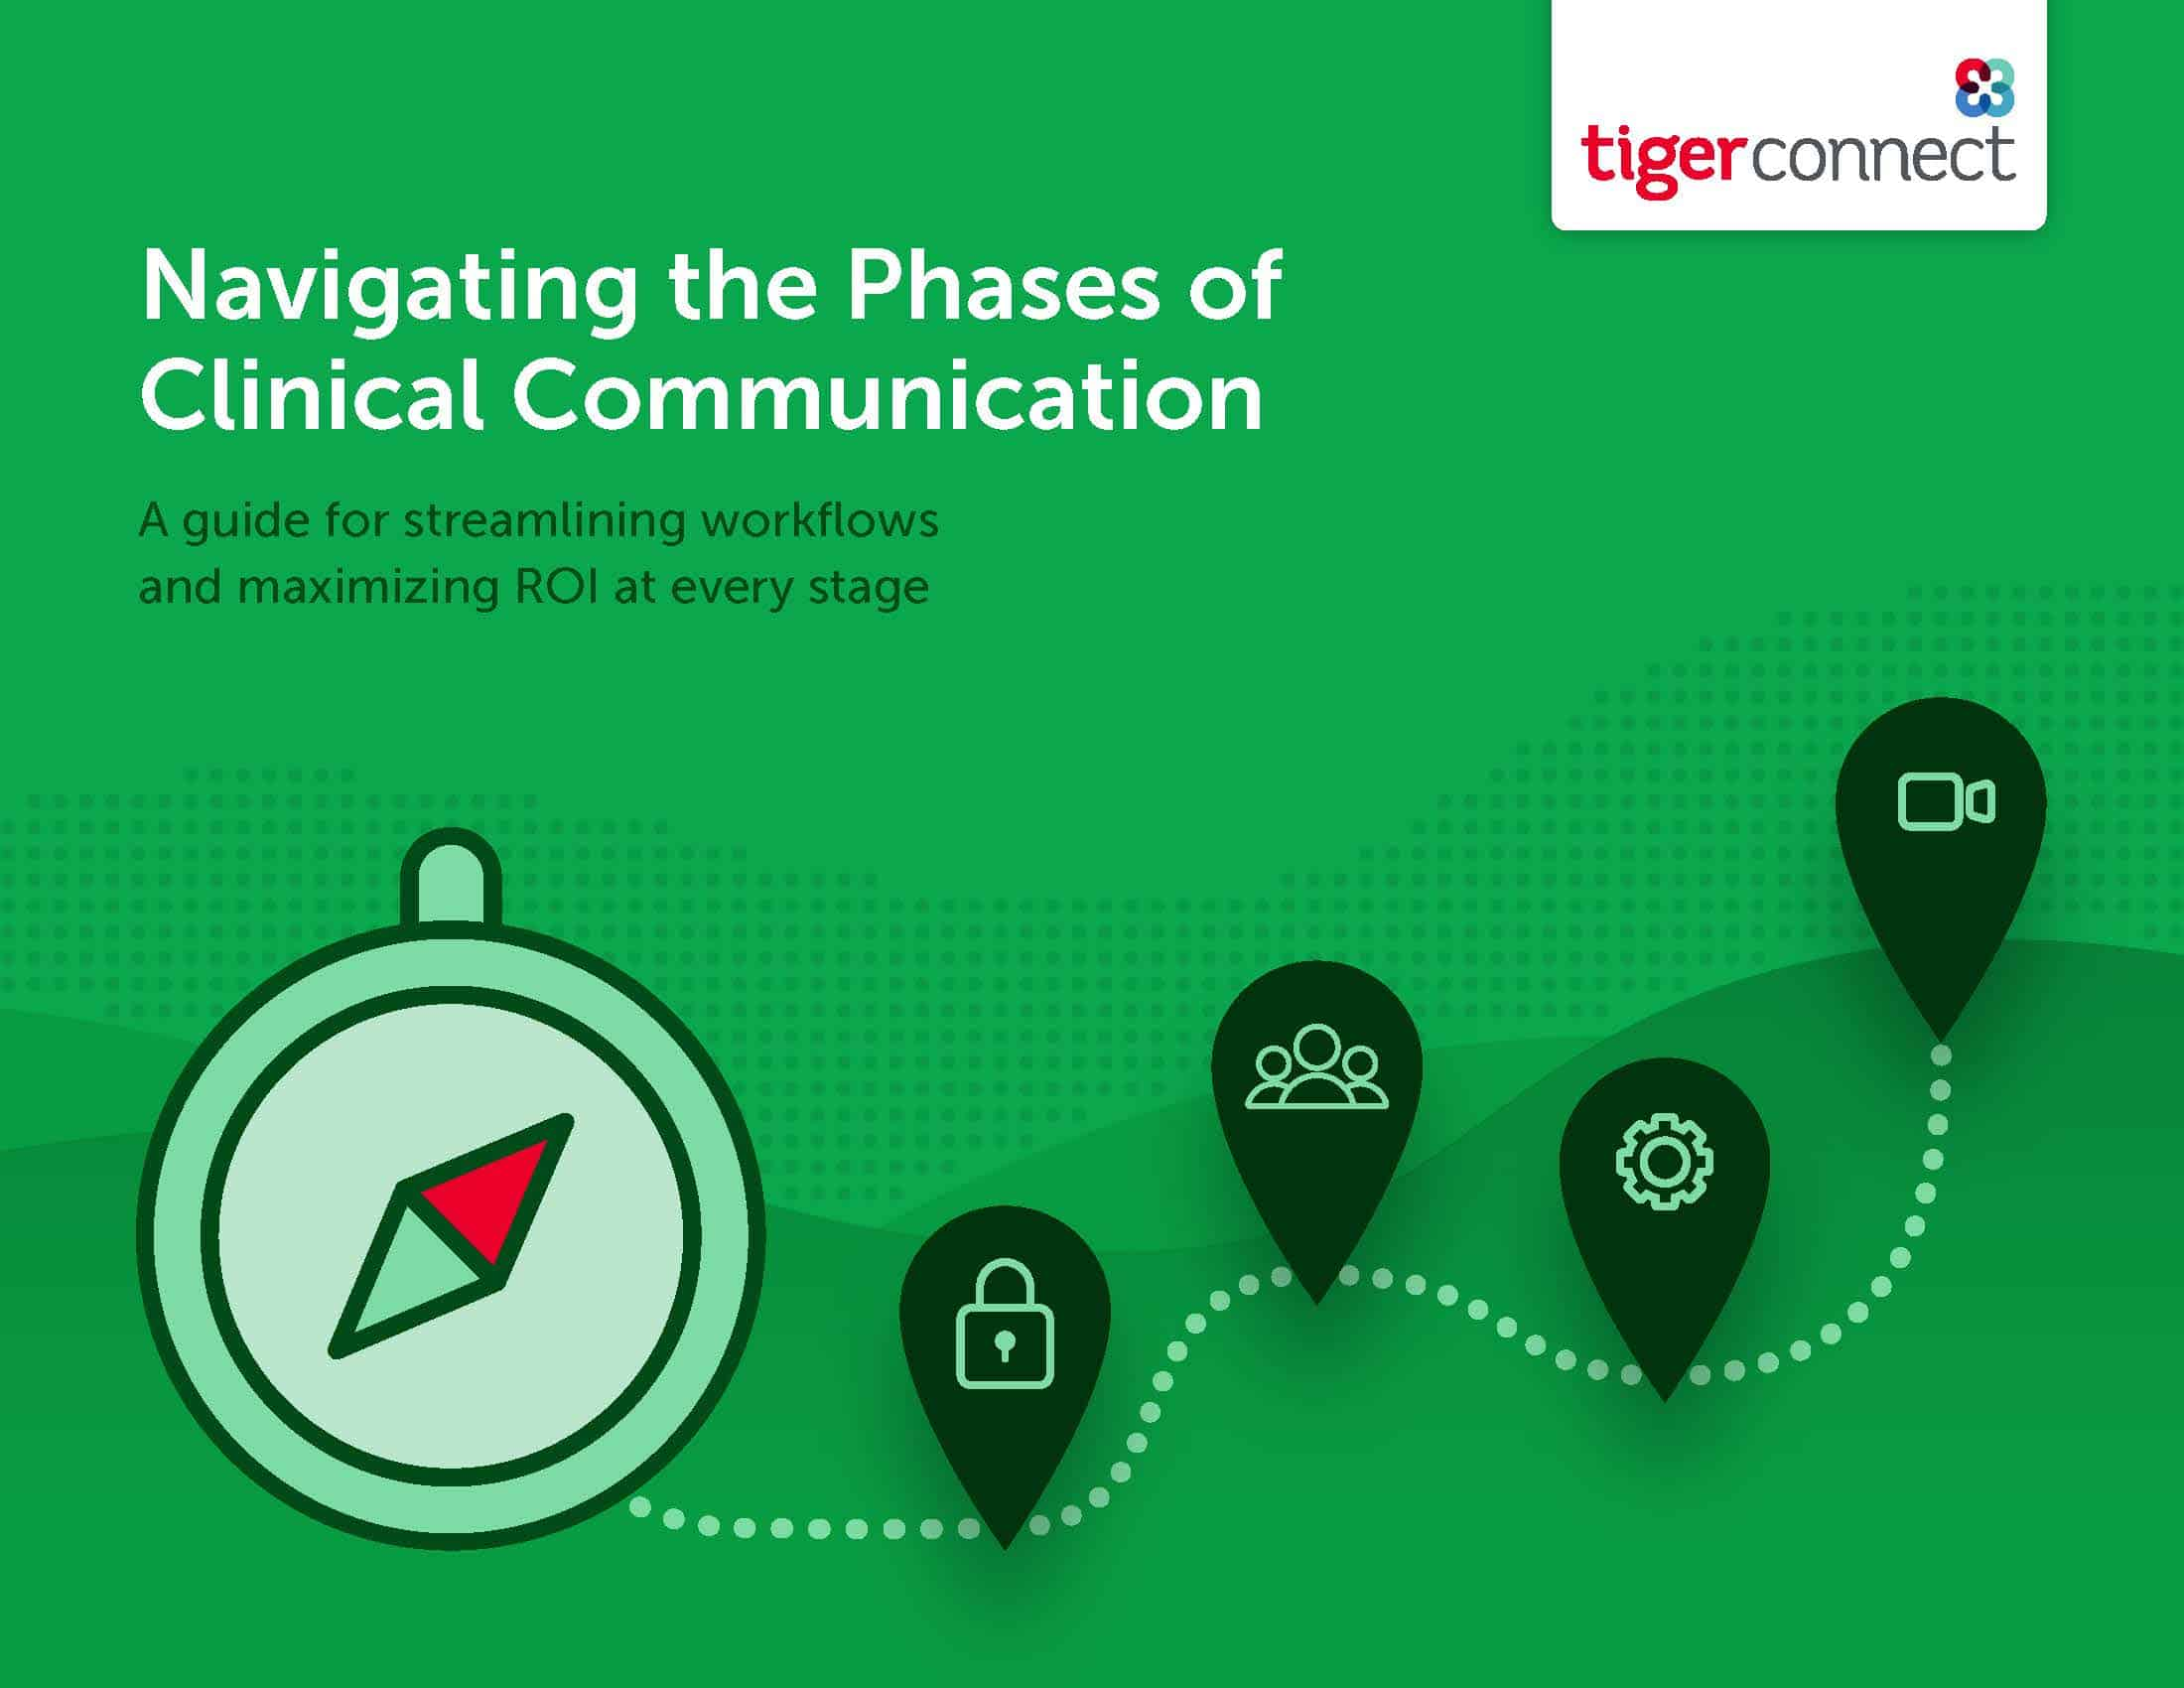 Navigating the Phases of Clinical Communication eBook